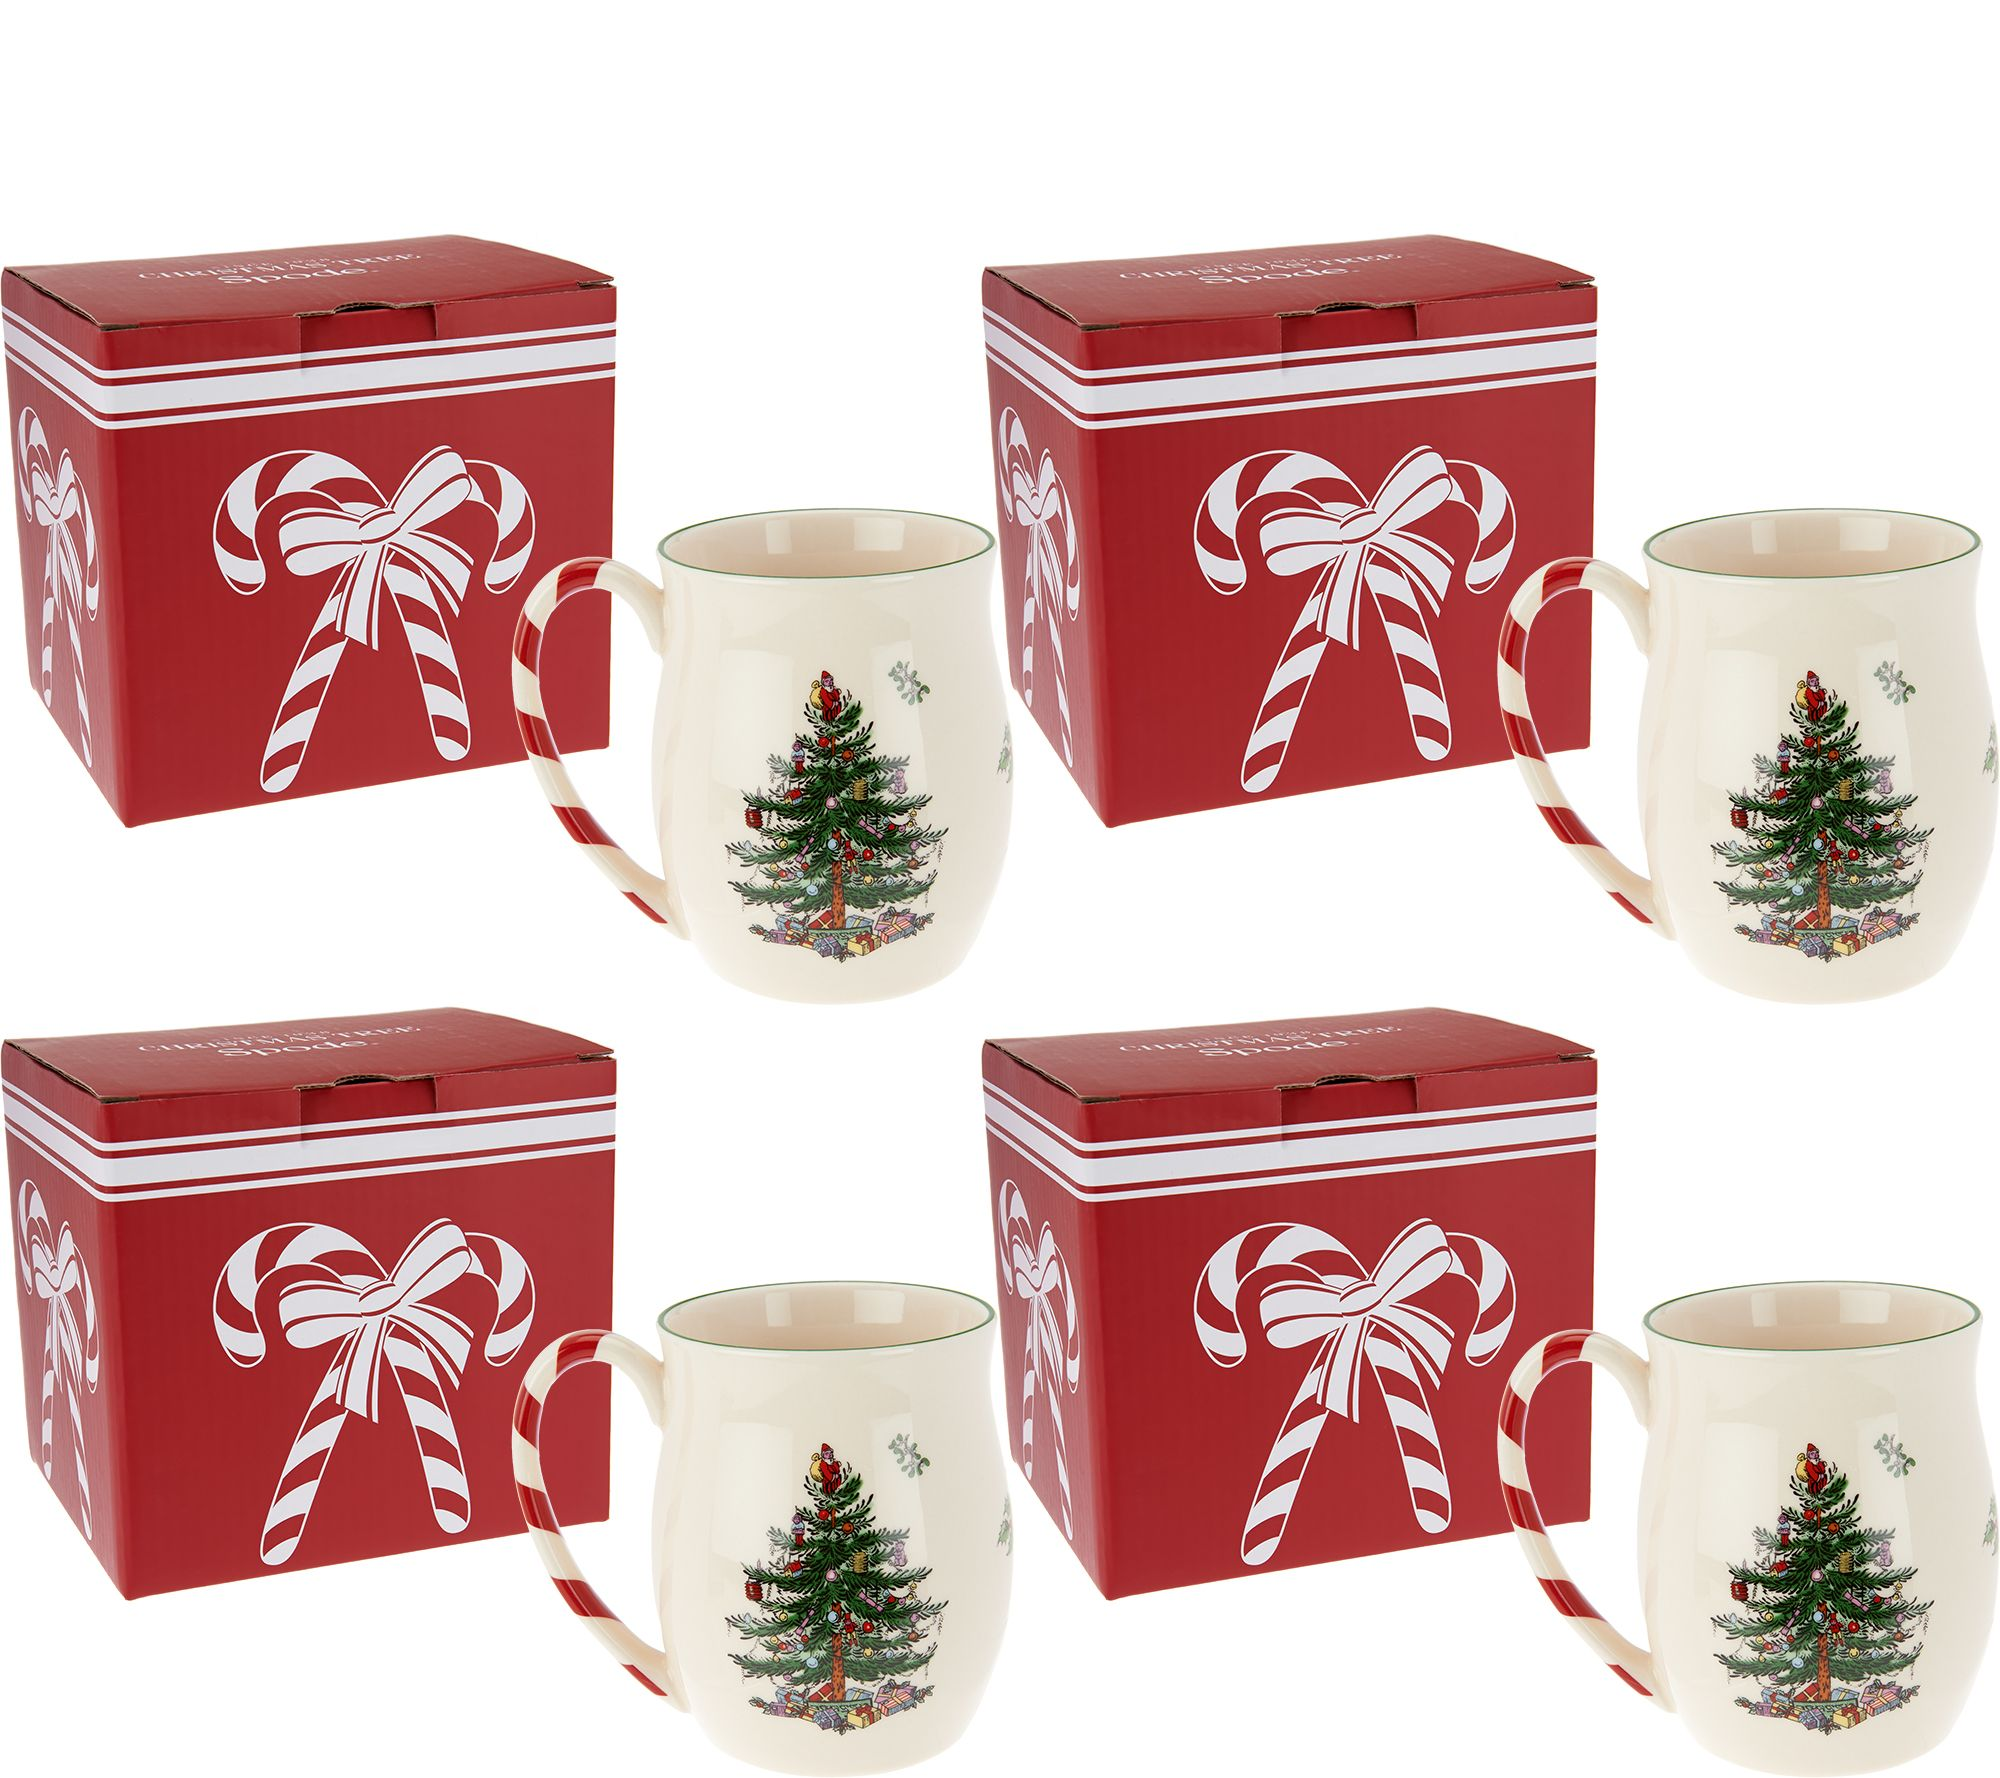 Spode Christmas Tree Set of 4 Mugs in Gift Boxes - Page 1 — QVC.com